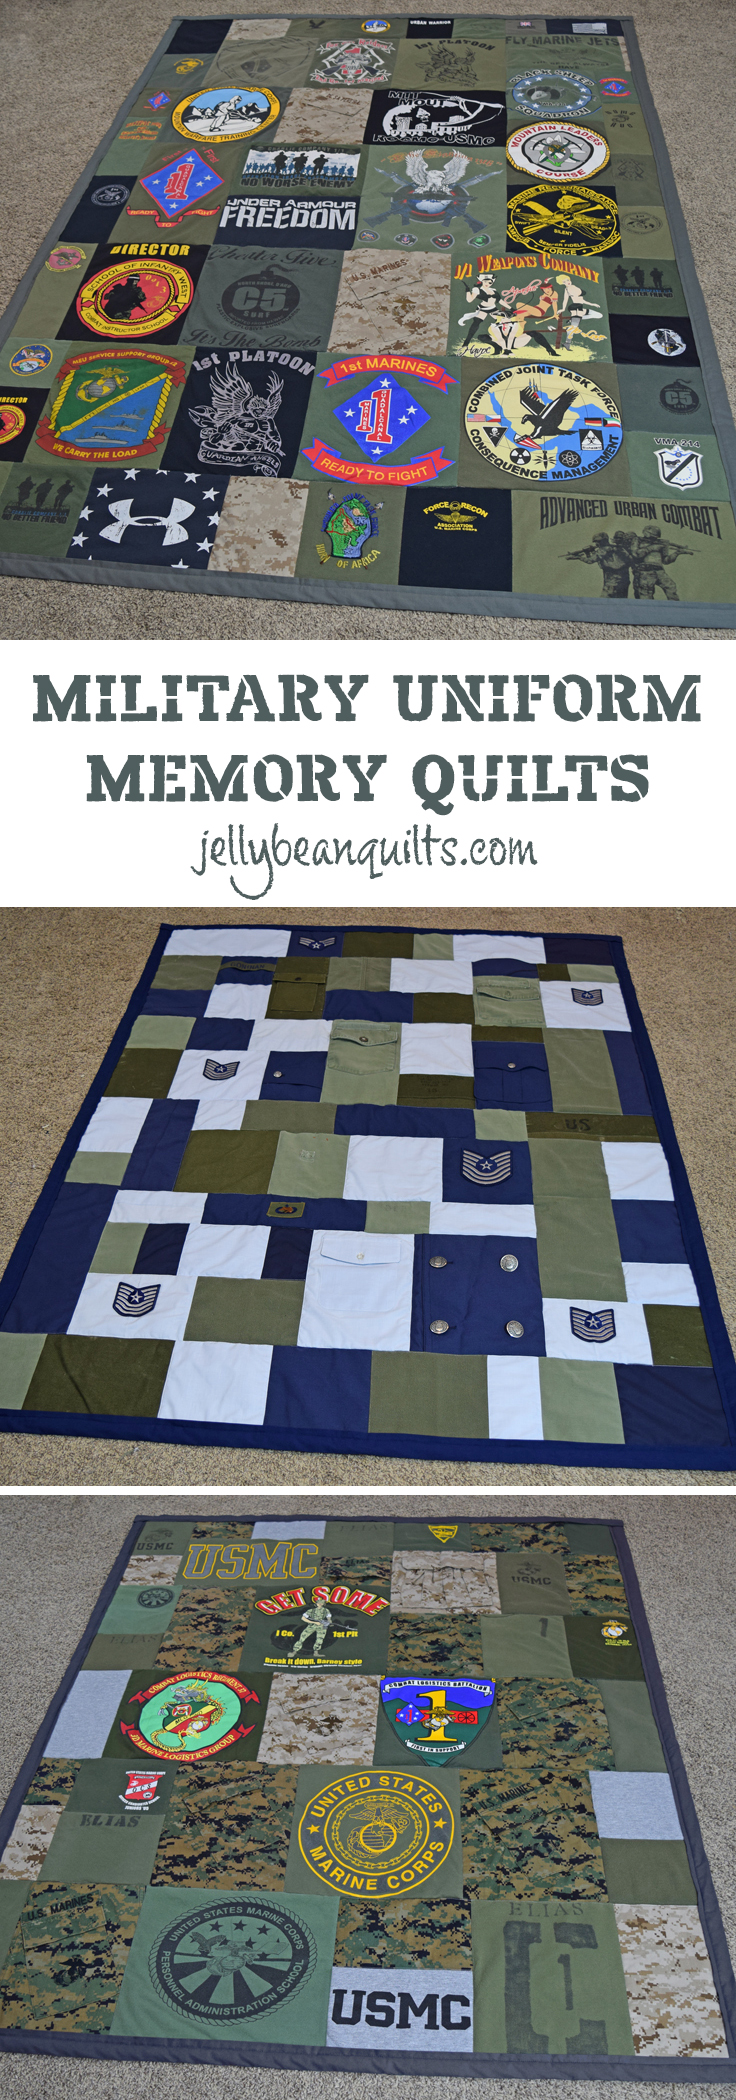 Military Quilts, Military Uniform Quilts, Military Memory ...